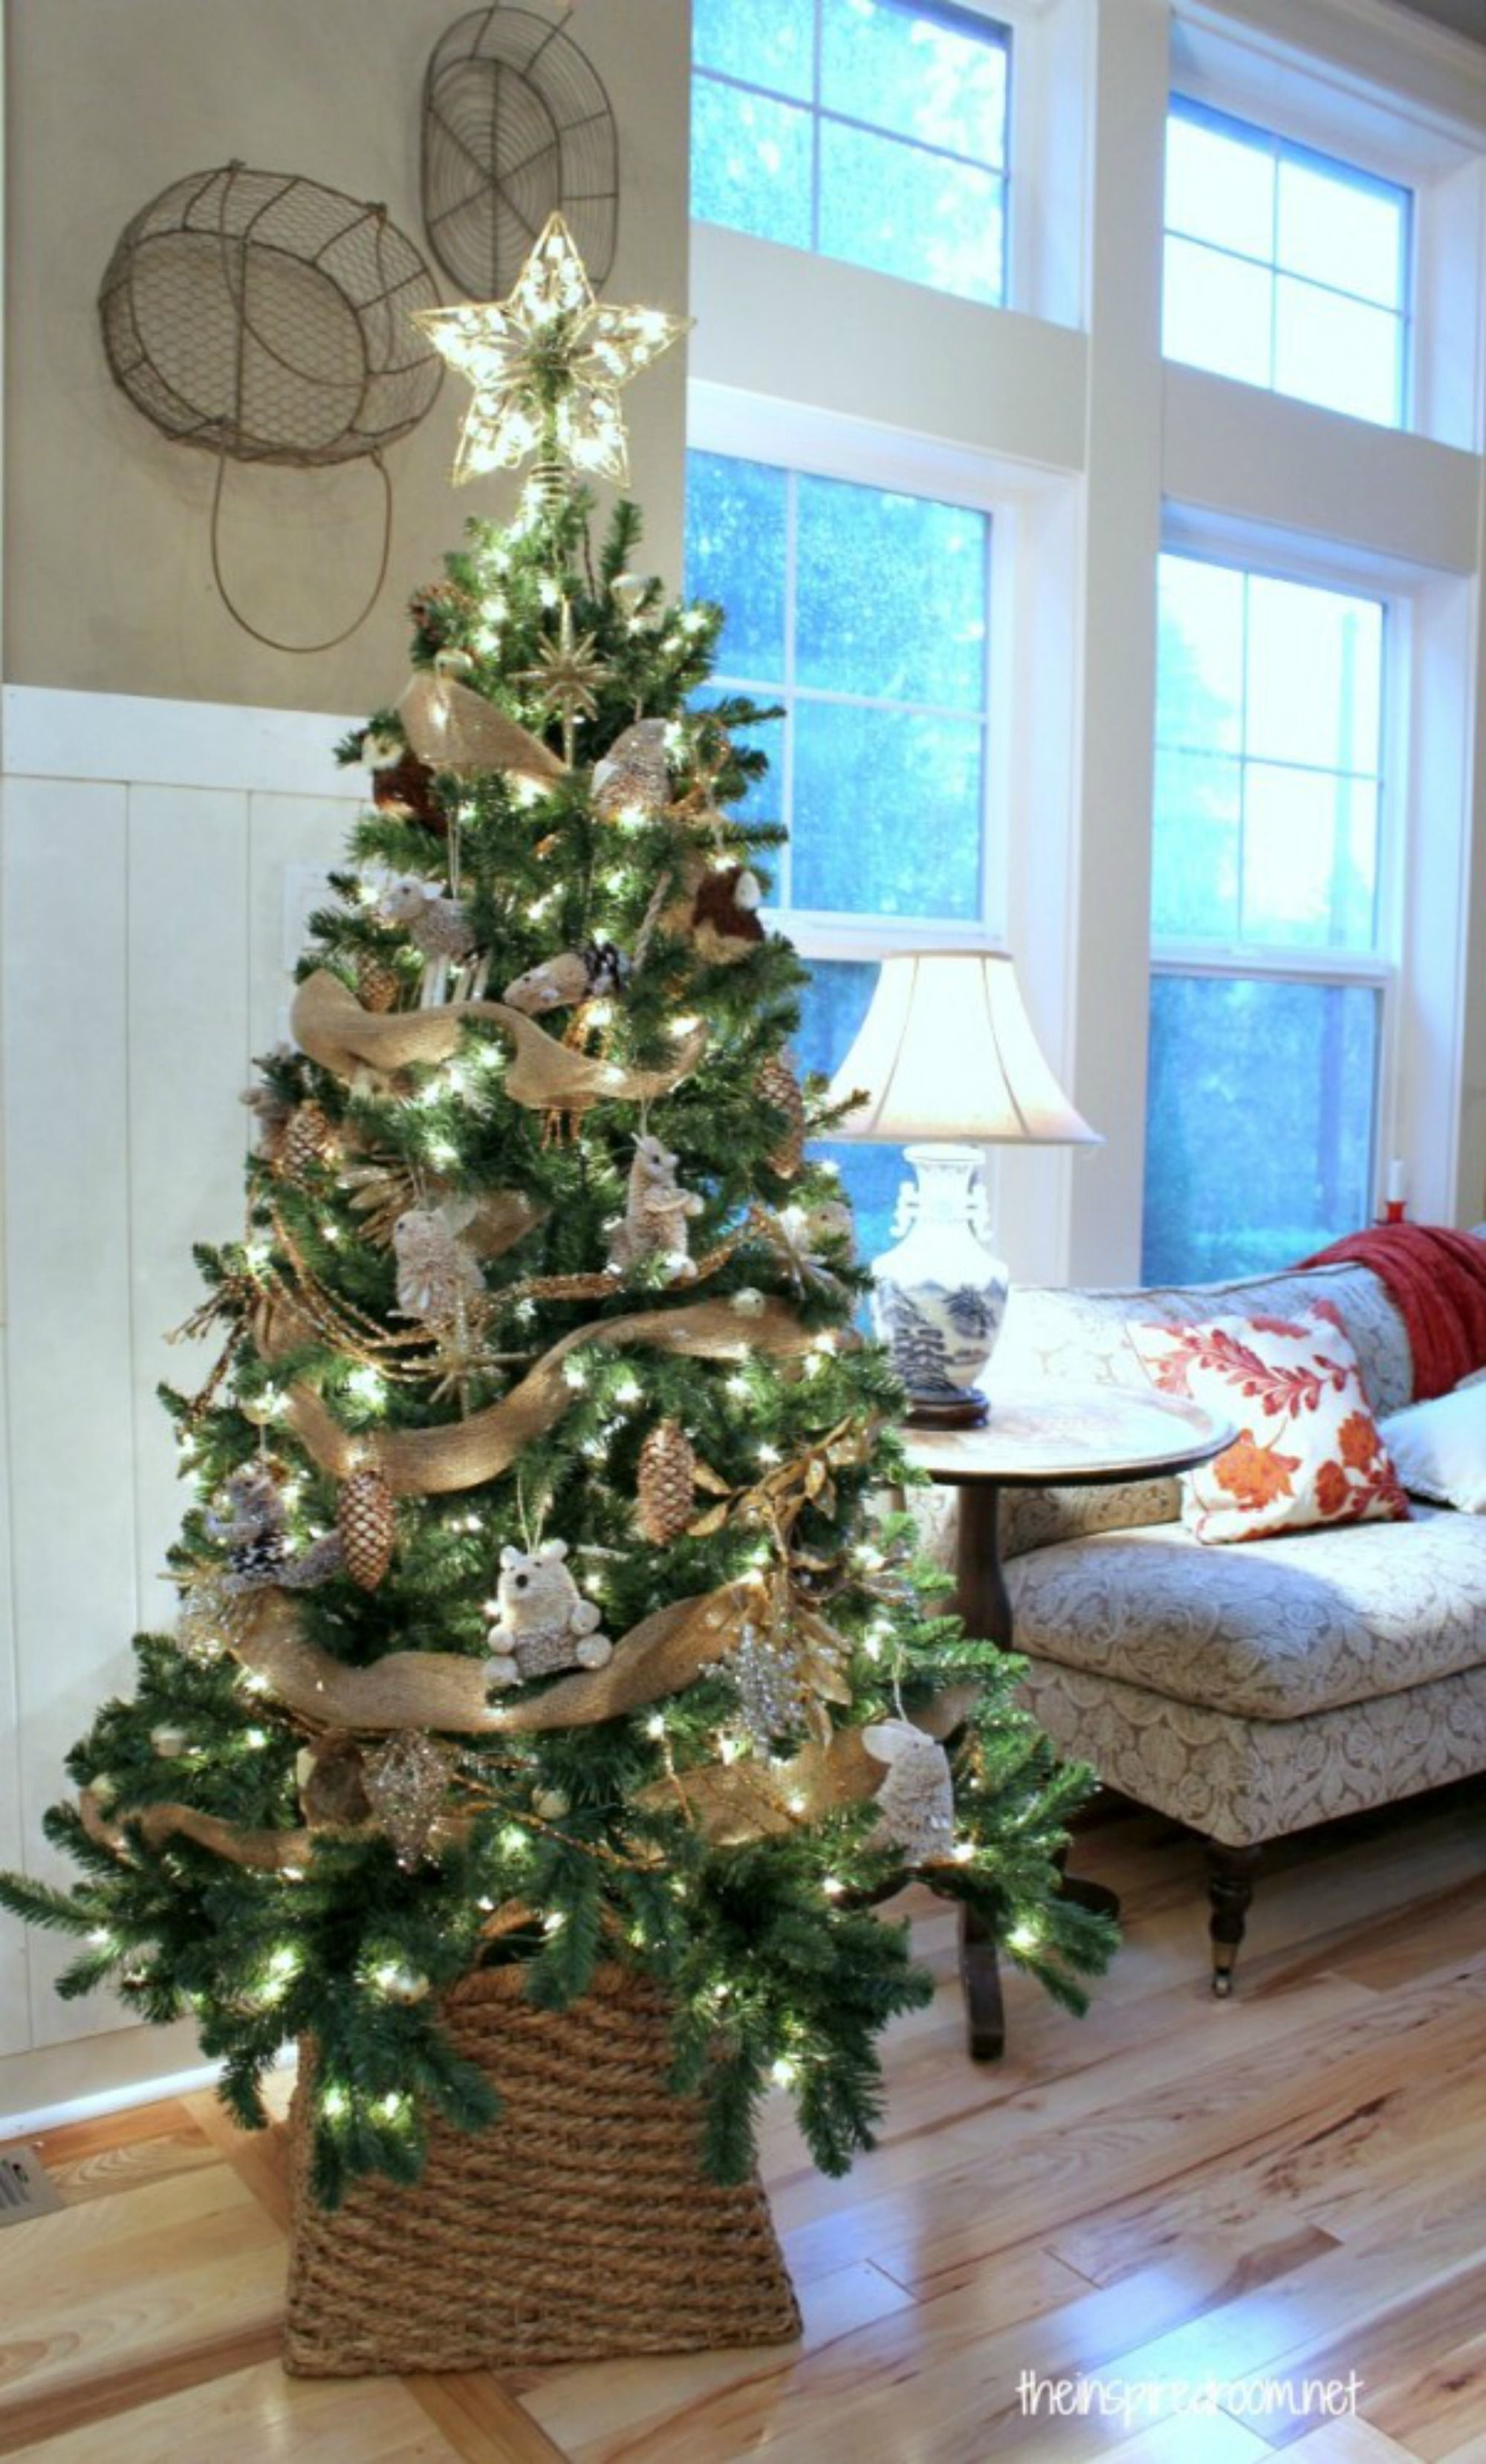 33 Unique Christmas Tree Decoration Ideas Pictures Of Decorated Christmas Trees